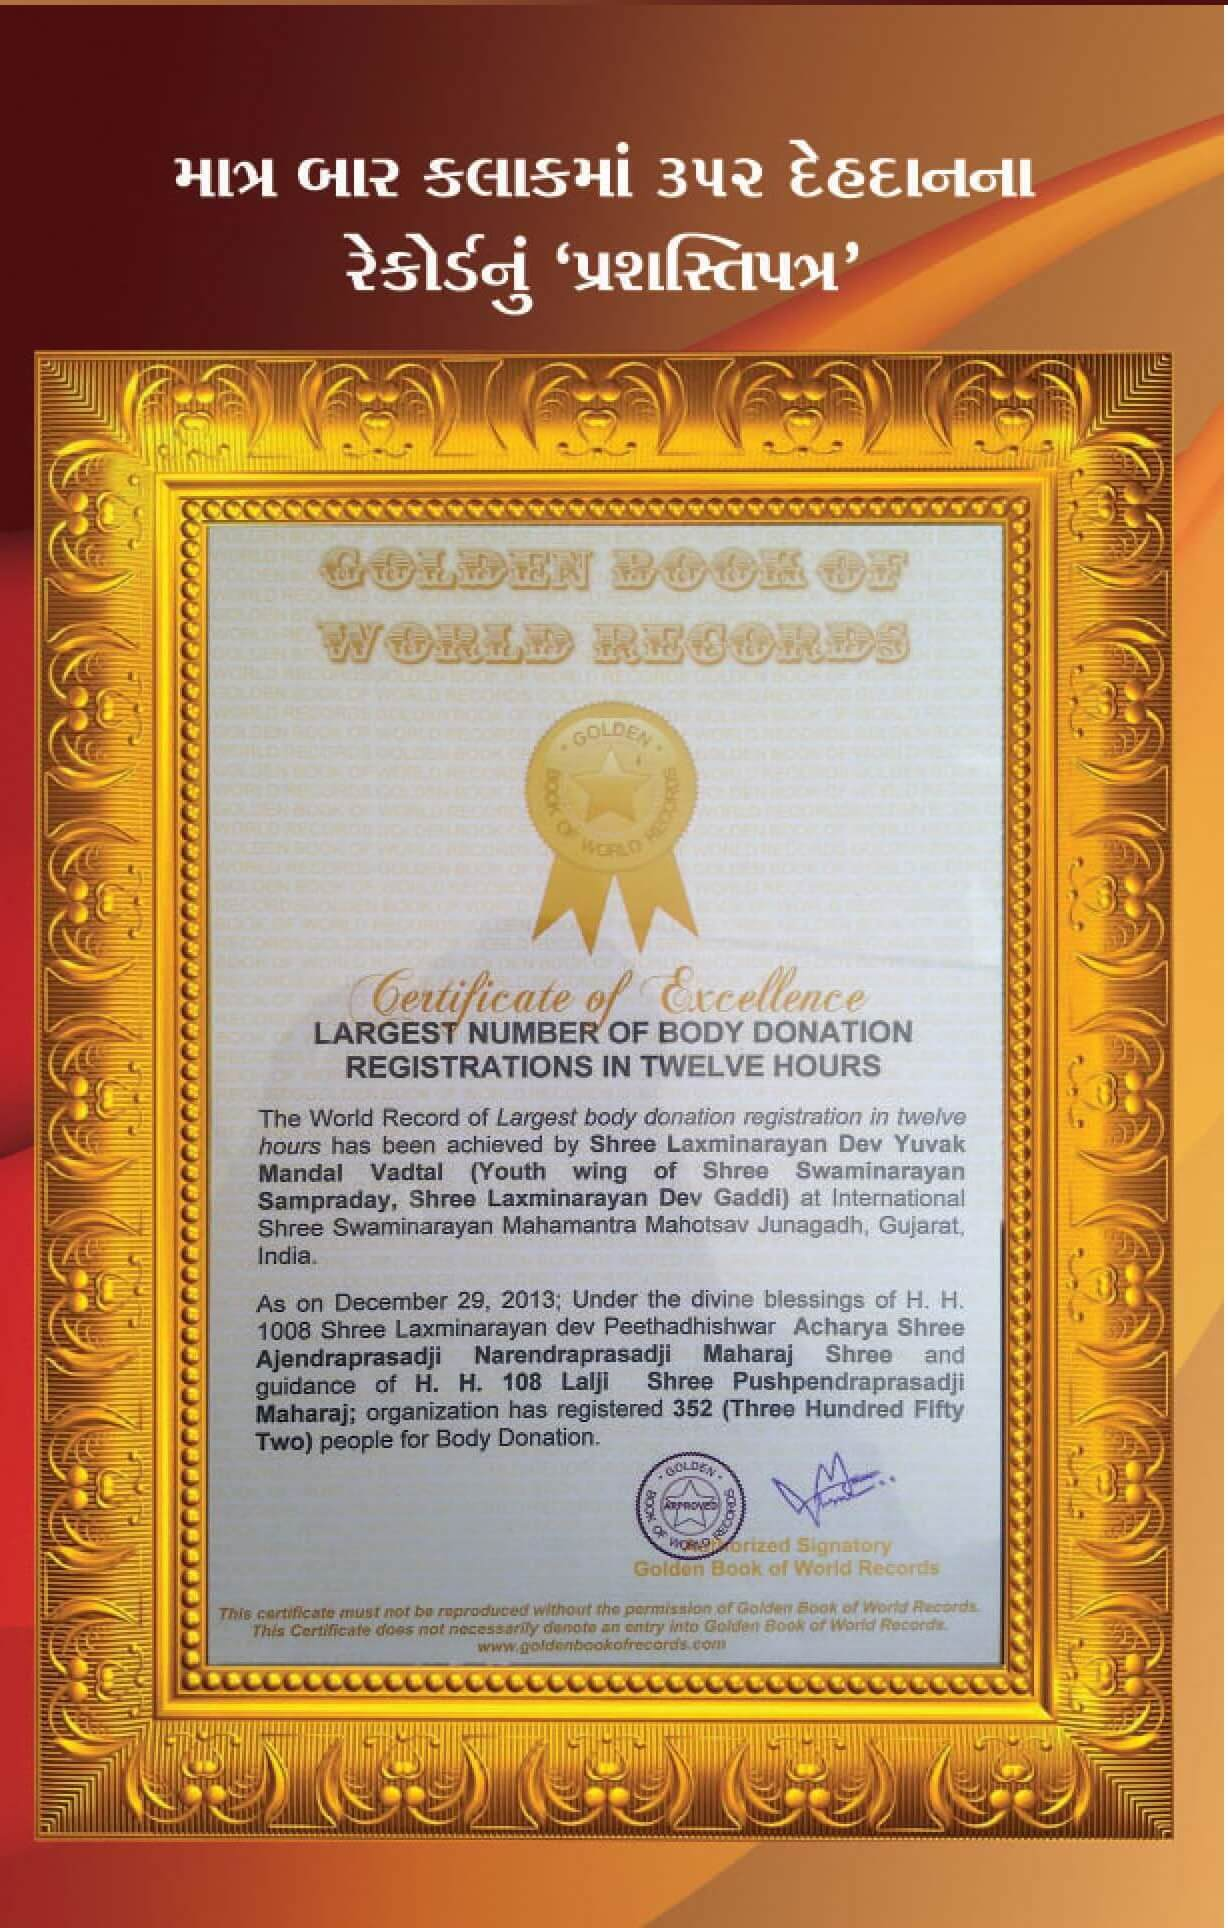 Golden Book of Records 352 Largest Number of Body Donation Registrations in Twelve Hours